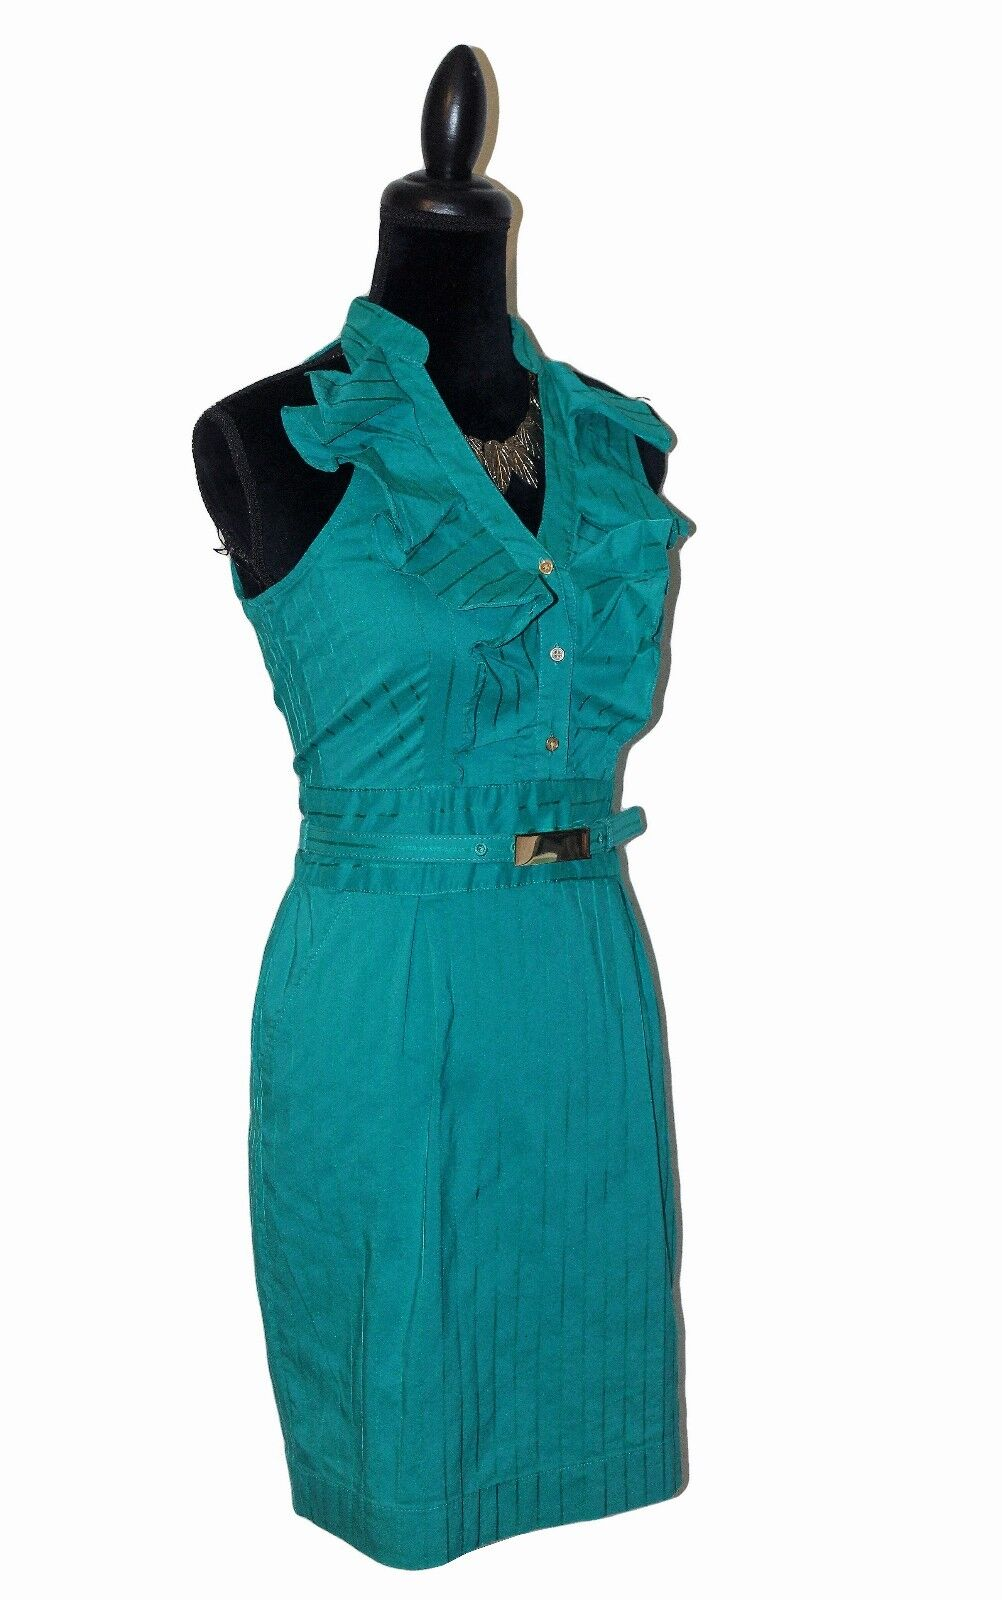 7add7df2a8e ... NWOT Express Express Express Design Studio Ruffle Belted Dress - Sz 6 -  e985dd